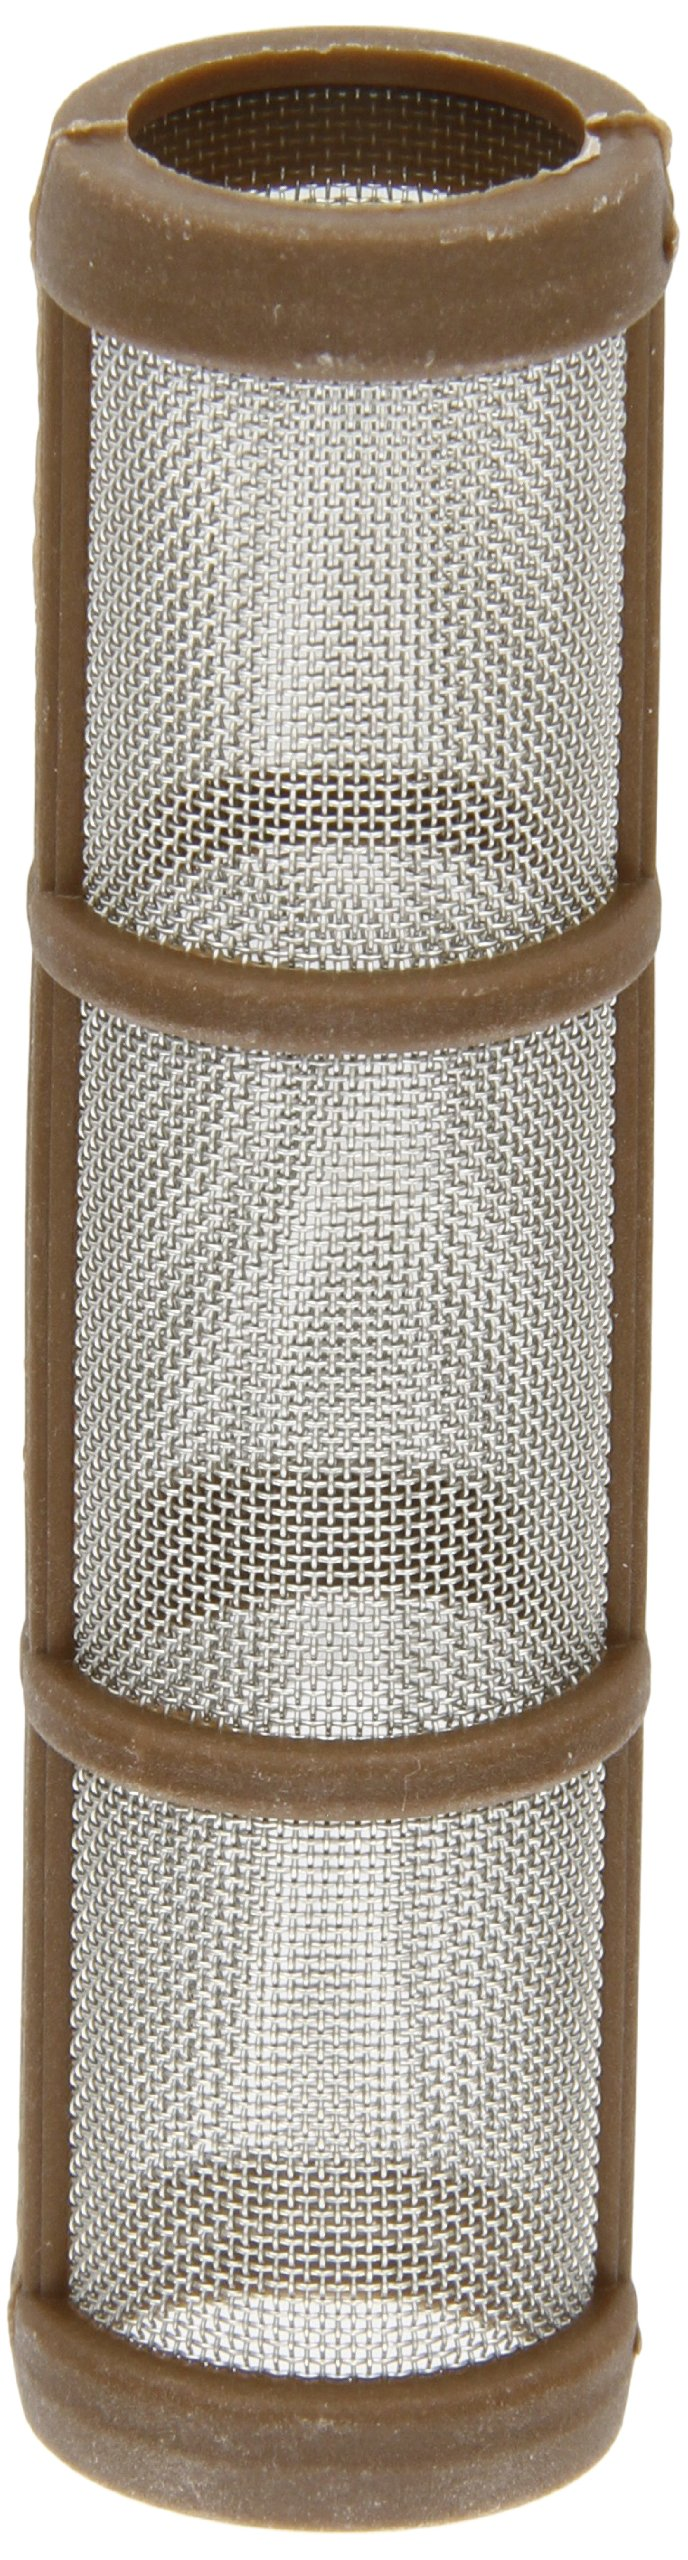 Banjo Stainless Steel 316 Screen for Y Strainer, 40 Mesh, 1/2 - 3/4''